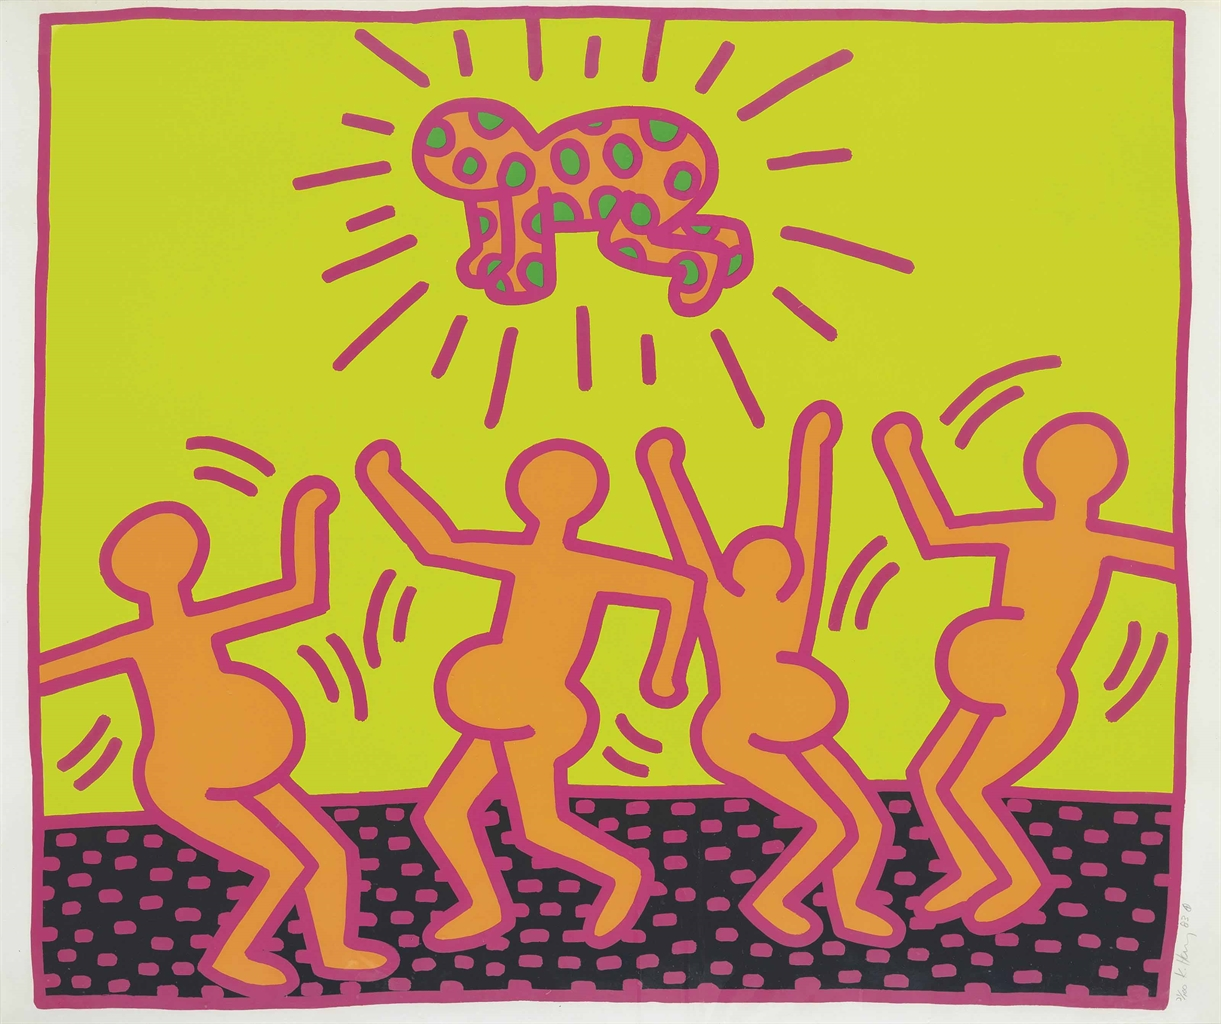 Keith Haring-One plate from: The Fertility Suite-1983